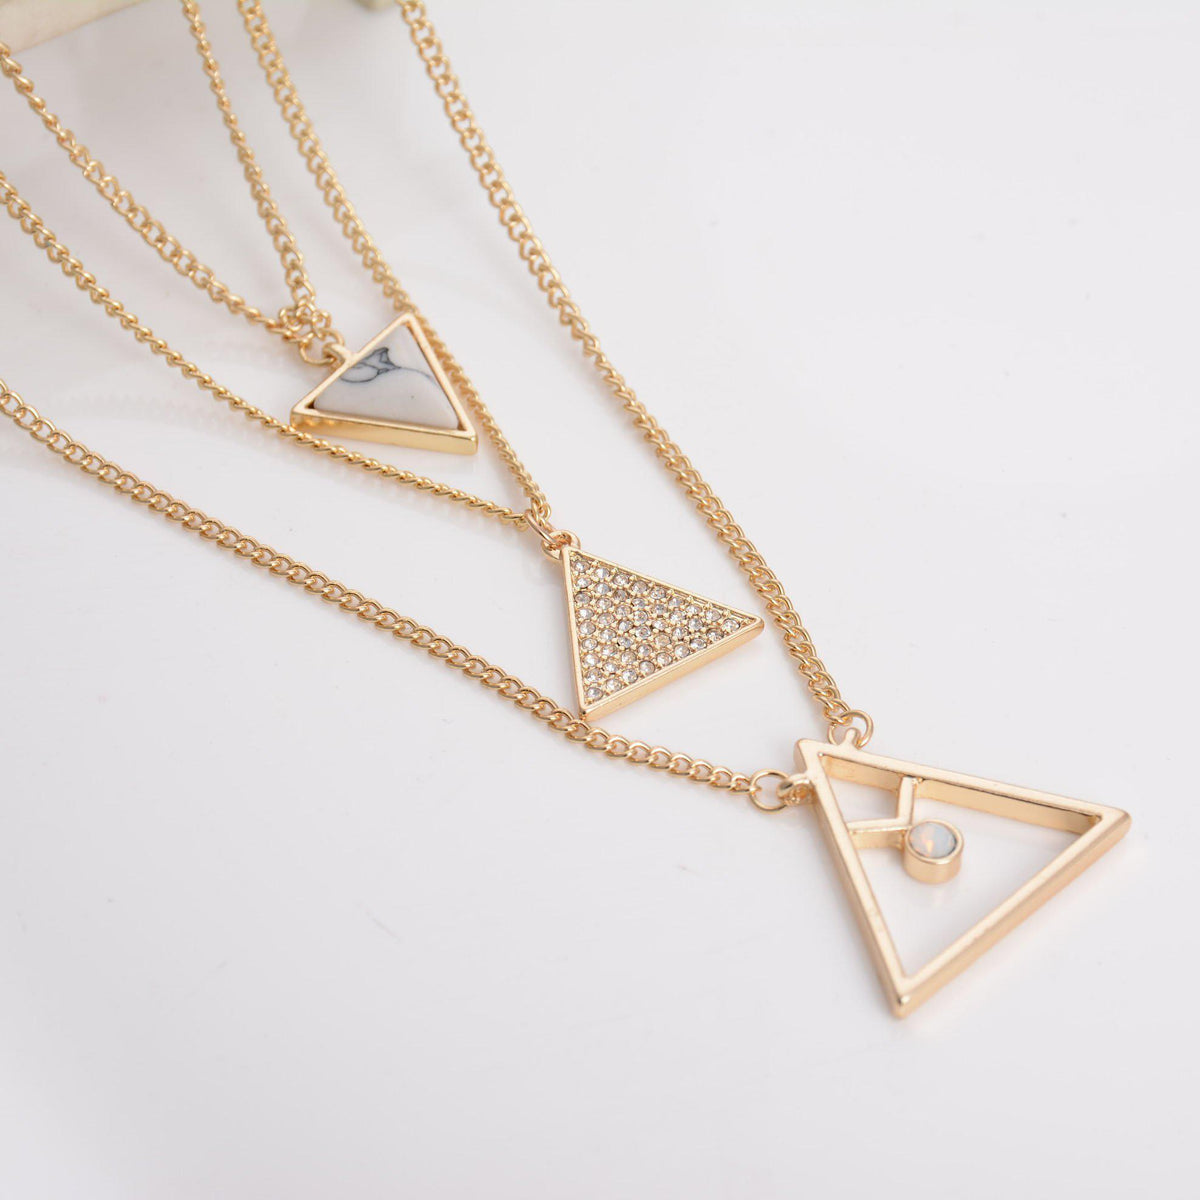 NewTrendy Design Multi Layer Triangle Turquoise Faux Marble Stone Pendant Necklaces Jewelry Rhinestone Women Neckalce Gift-NECKLACES-SheSimplyShops